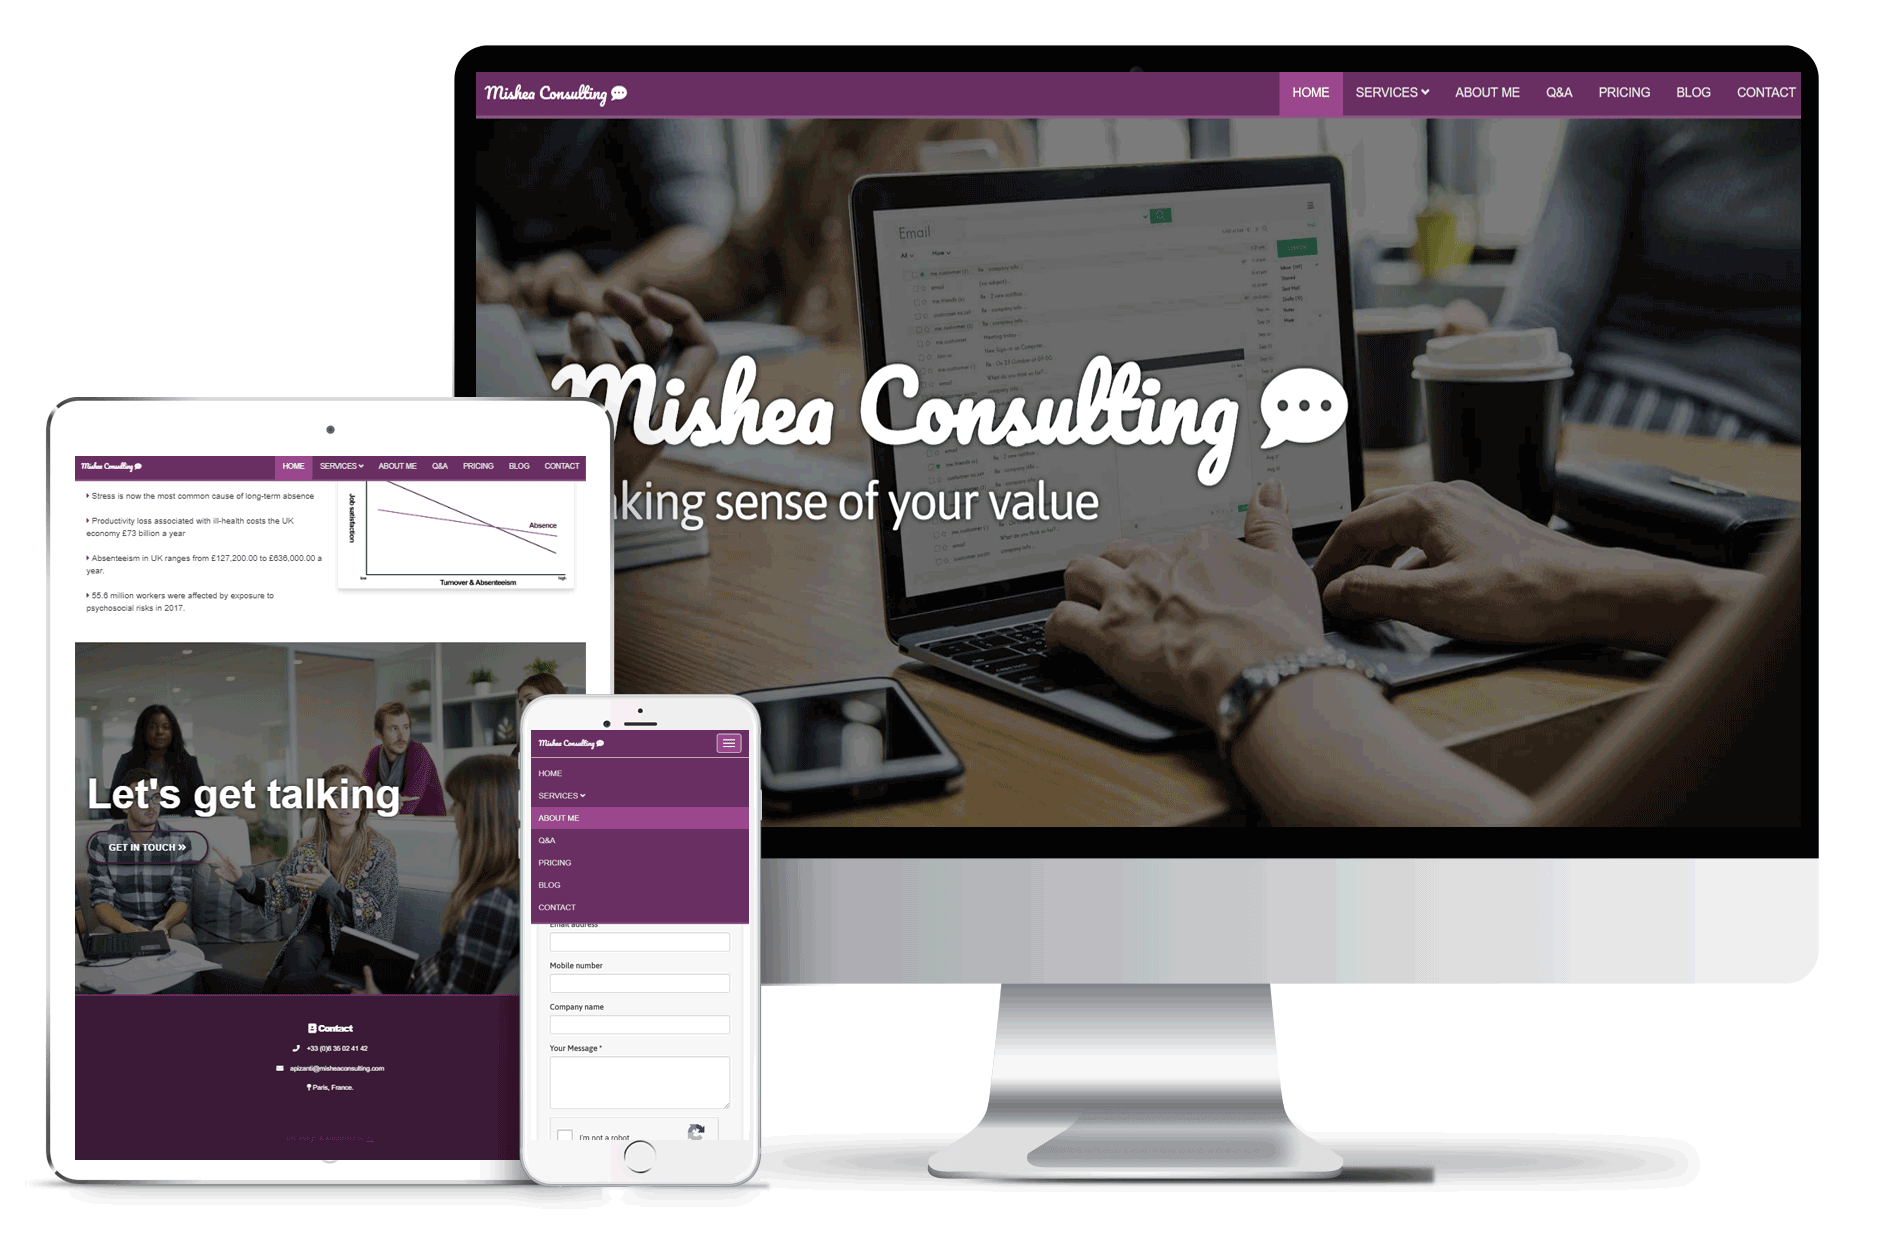 mishea consulting mock up